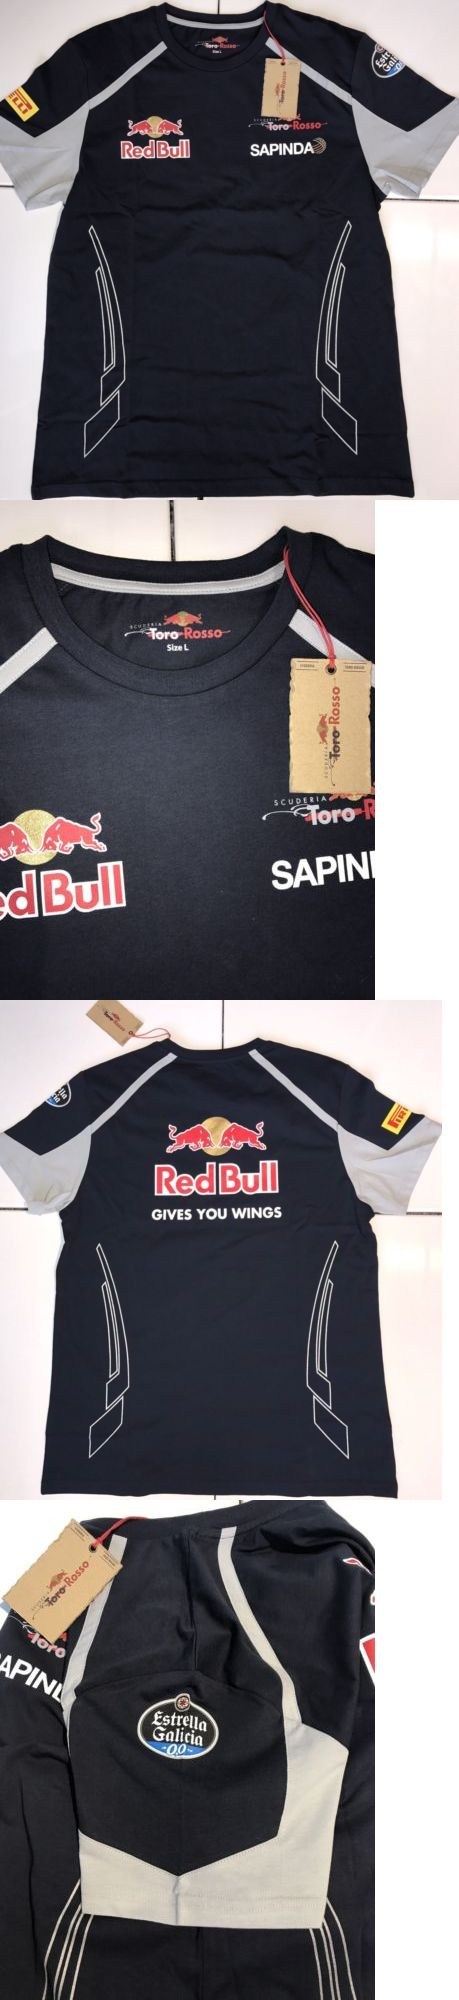 Racing-Formula 1 2876: Nwt Scuderia Toro Rosso Red Bull Racing F1 Team Navy Men S T Shirt Size Large -> BUY IT NOW ONLY: $59.95 on eBay!